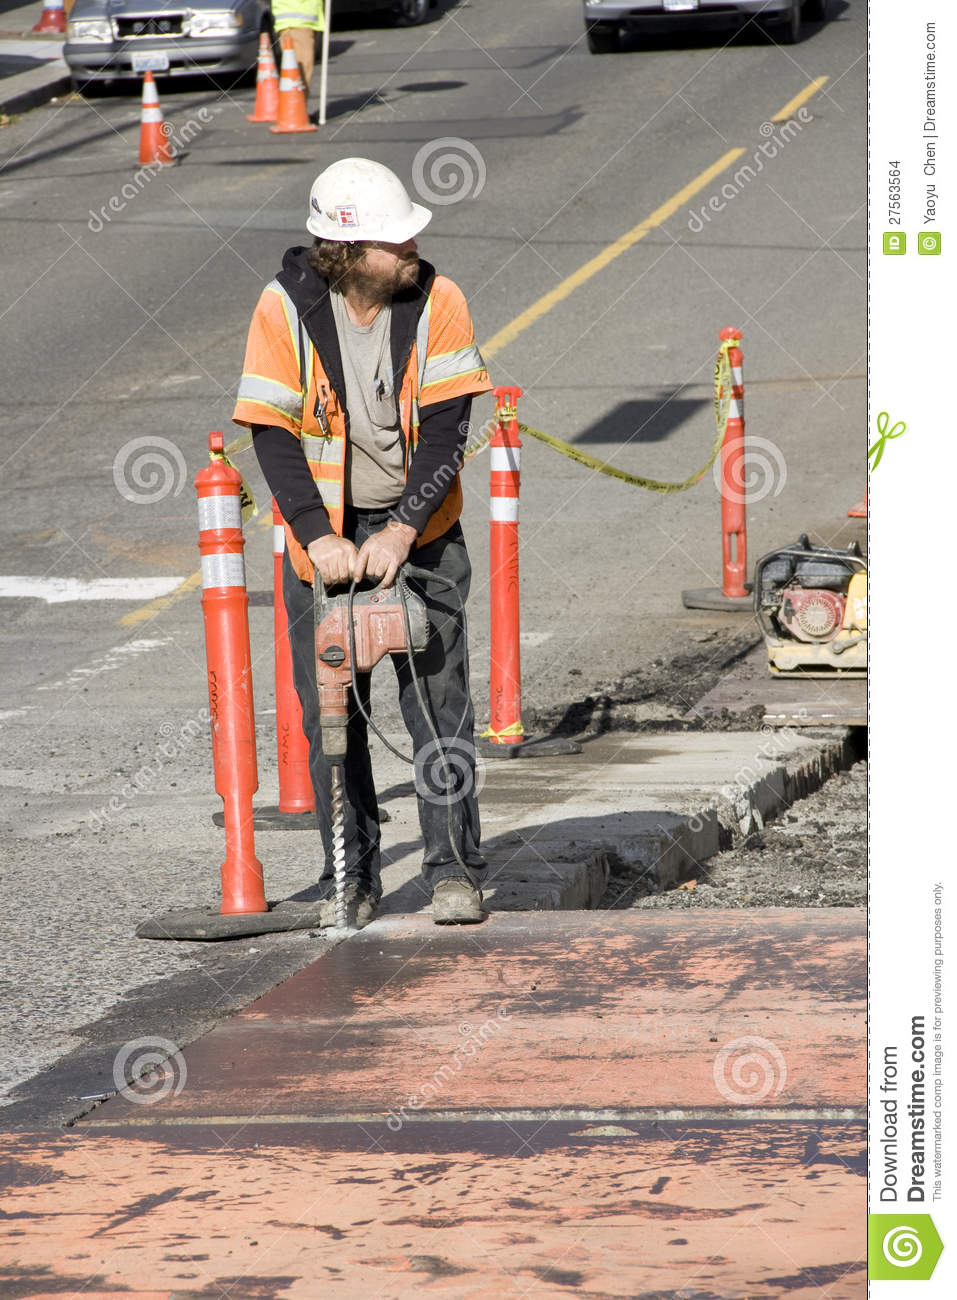 Construction Worker Drilling Editorial Stock Image - Image ...  Construction Wo...